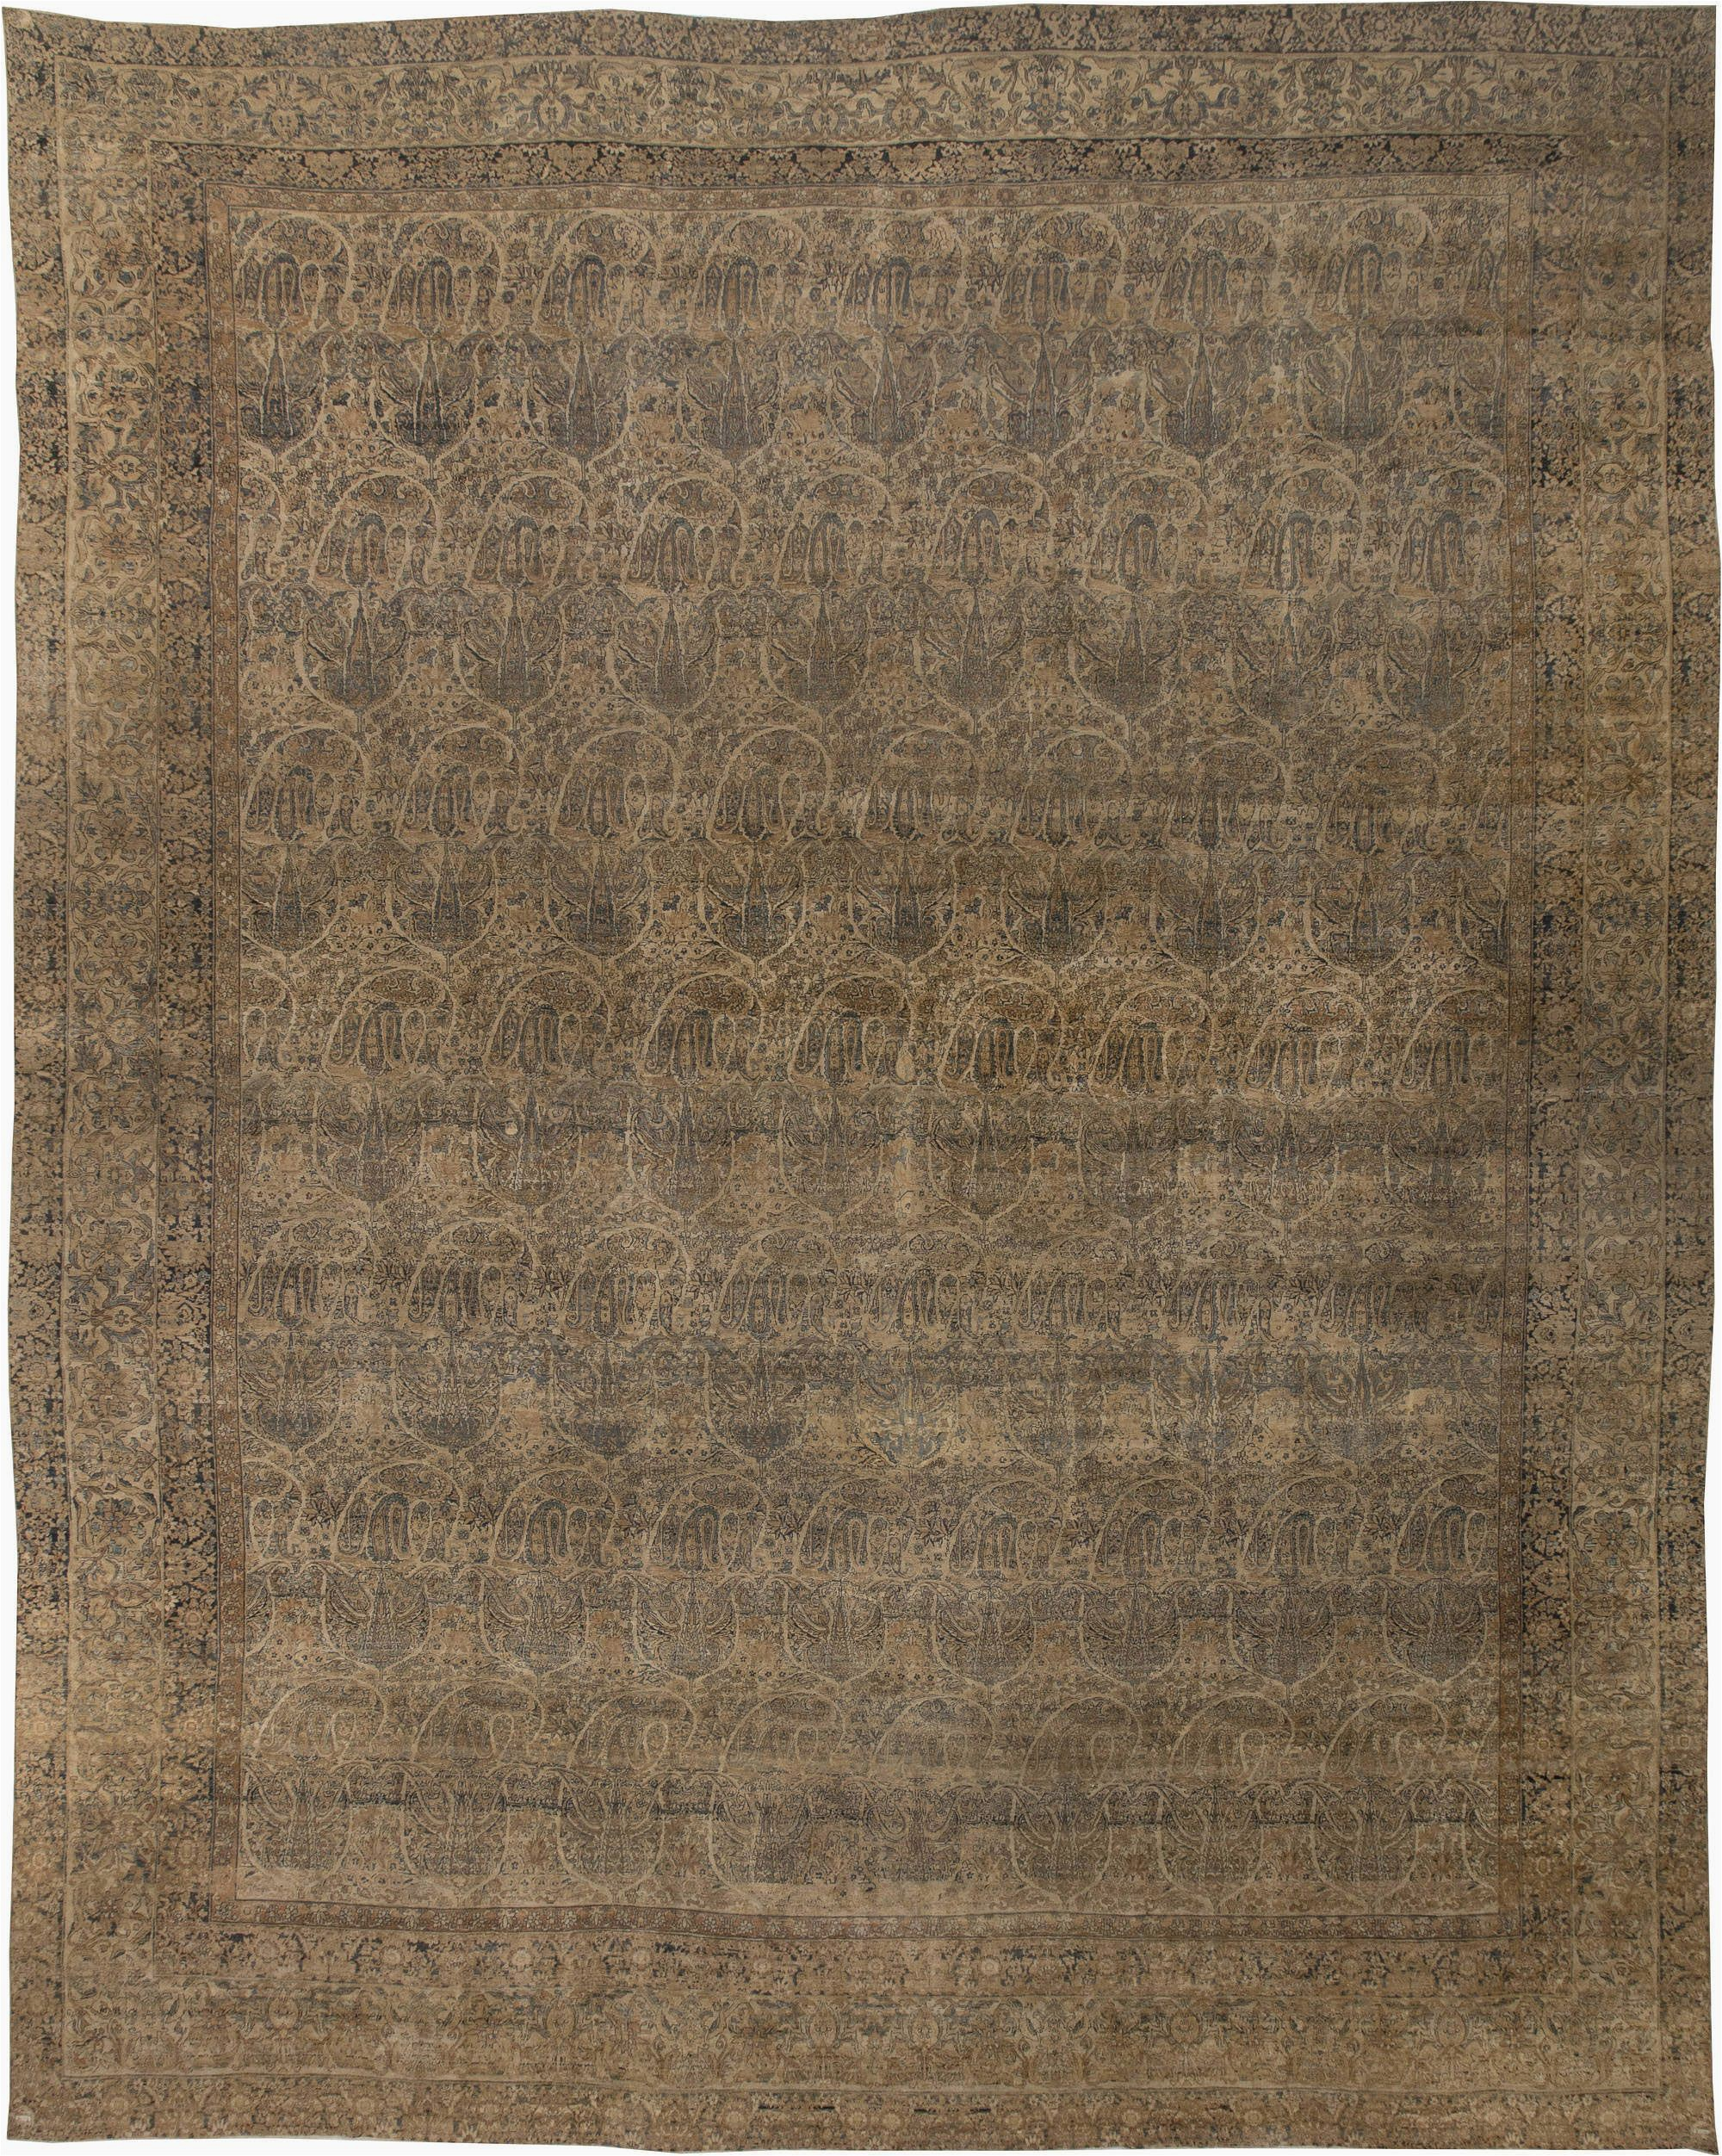 Extra Large Rustic area Rugs Extra Large Rugs Extra Large Rug area Rug In Living Room